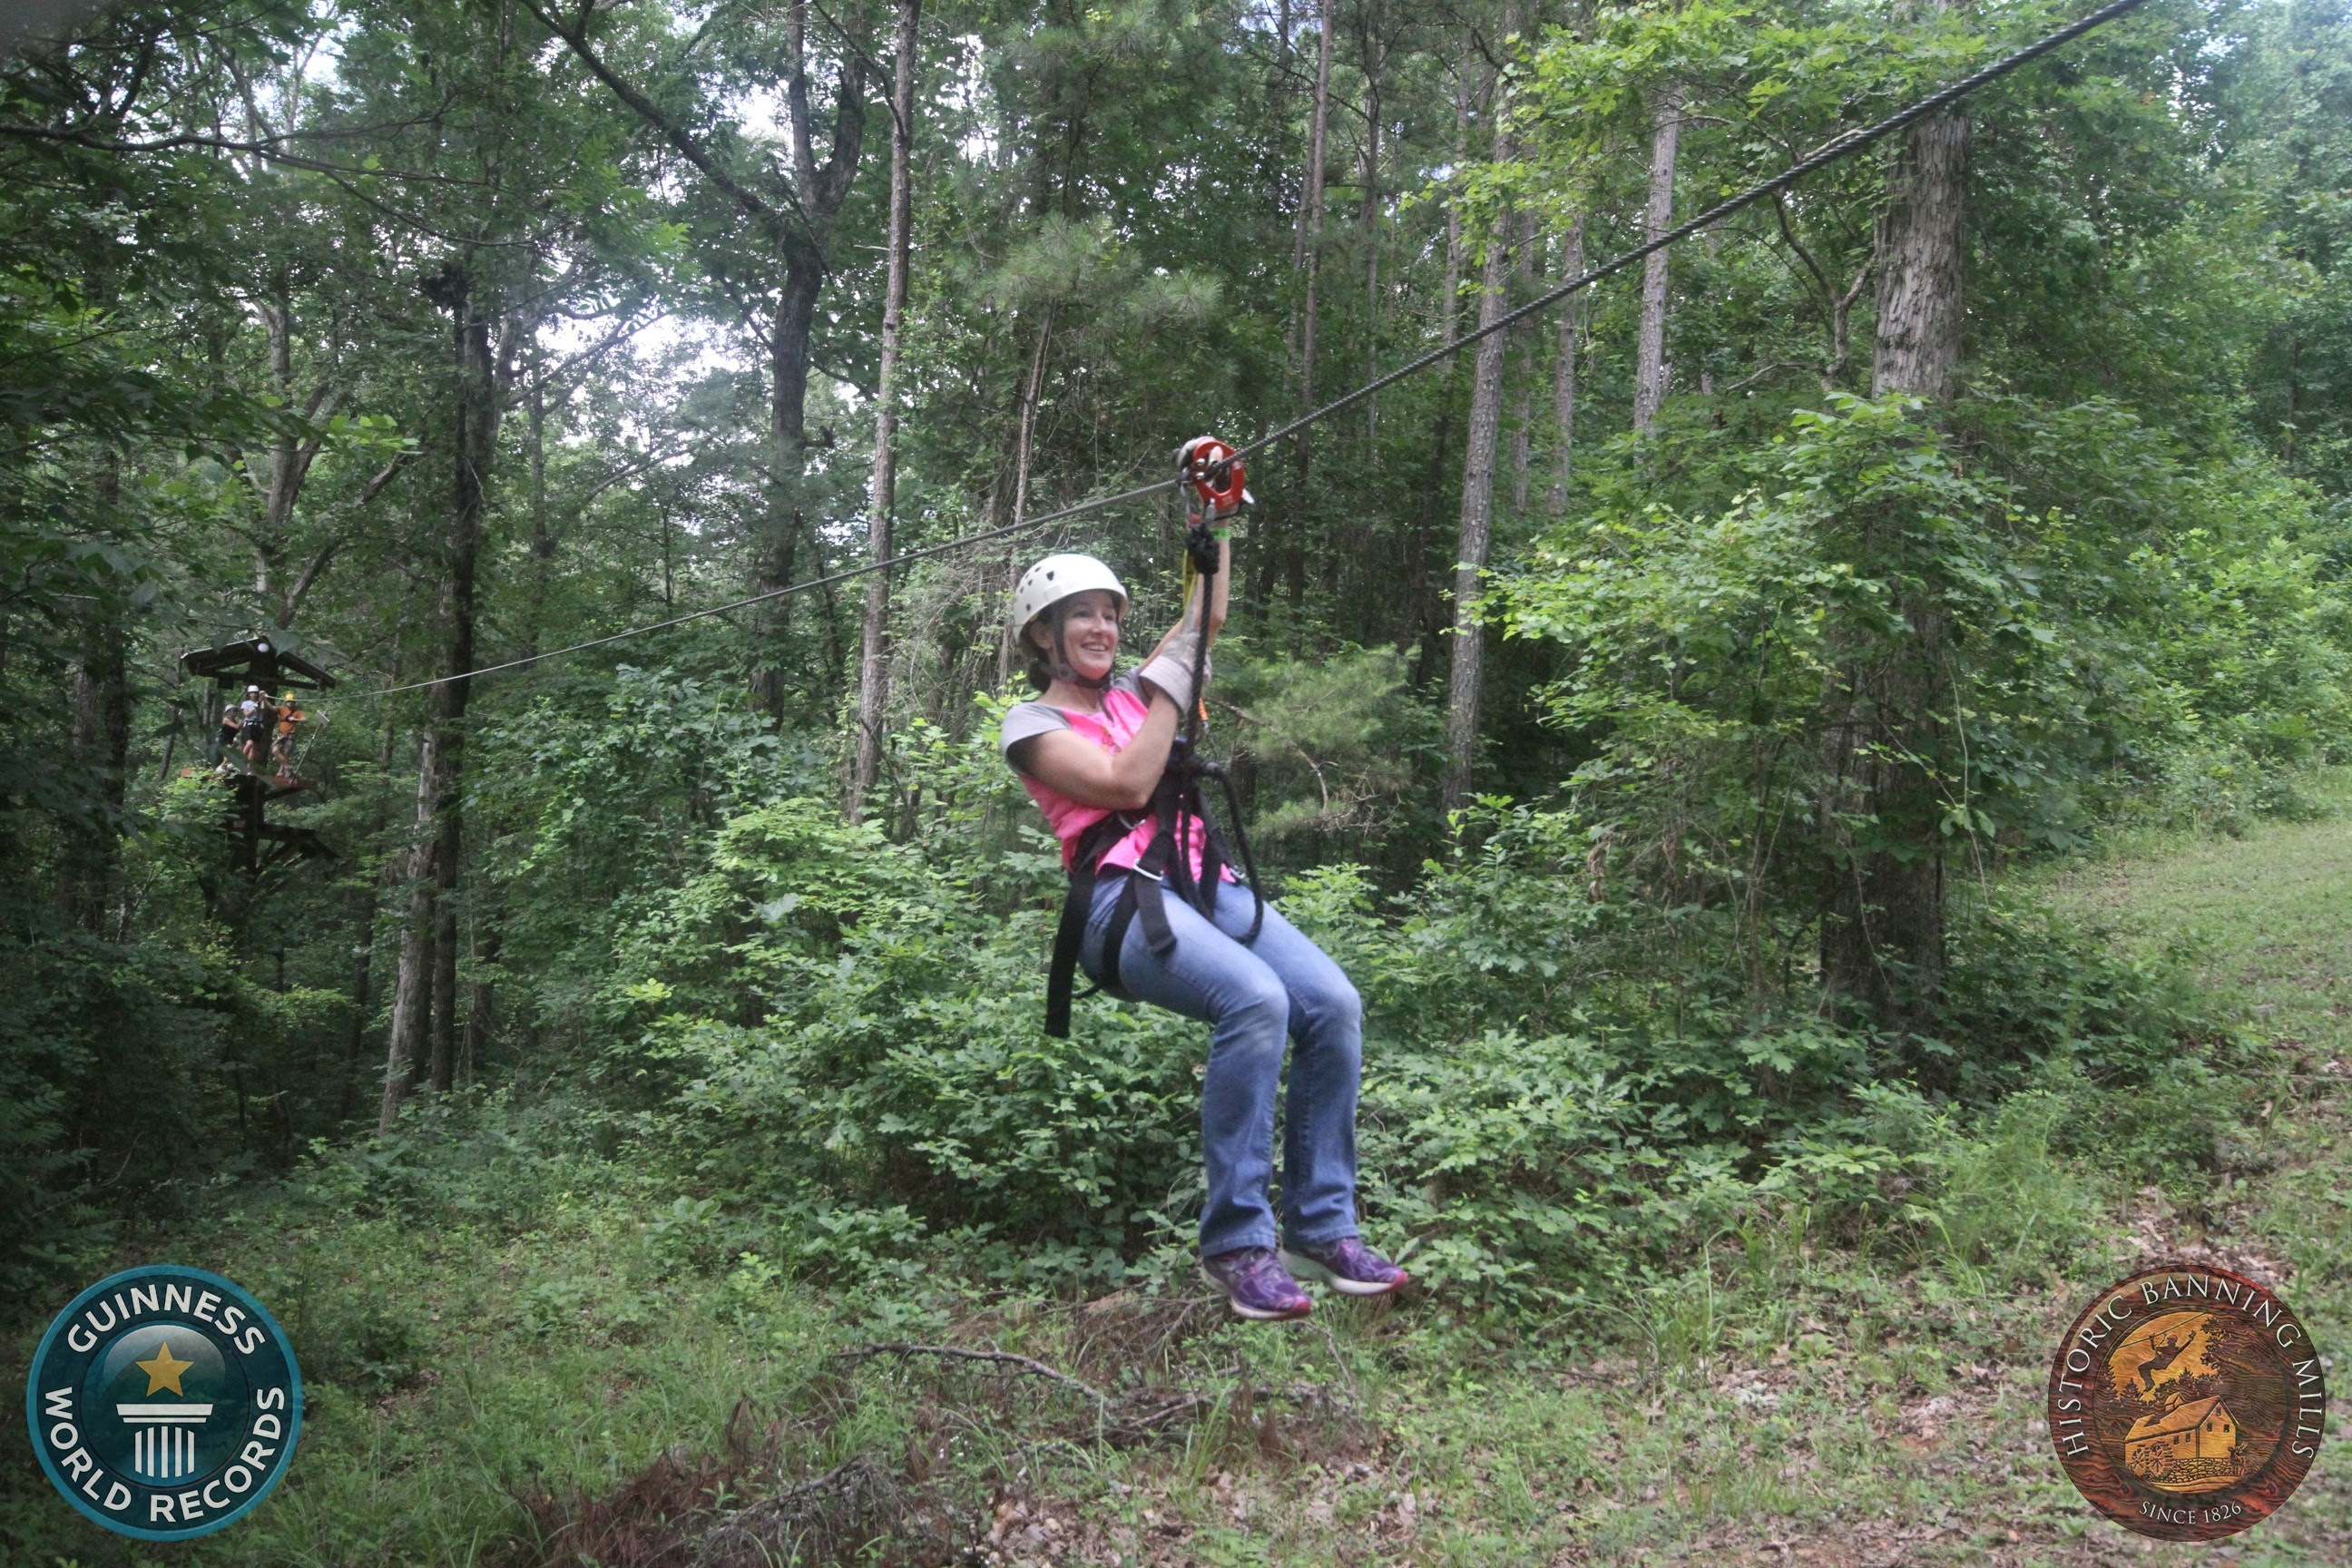 Trying out the Level 1 zip line at Historic Banning Mills!